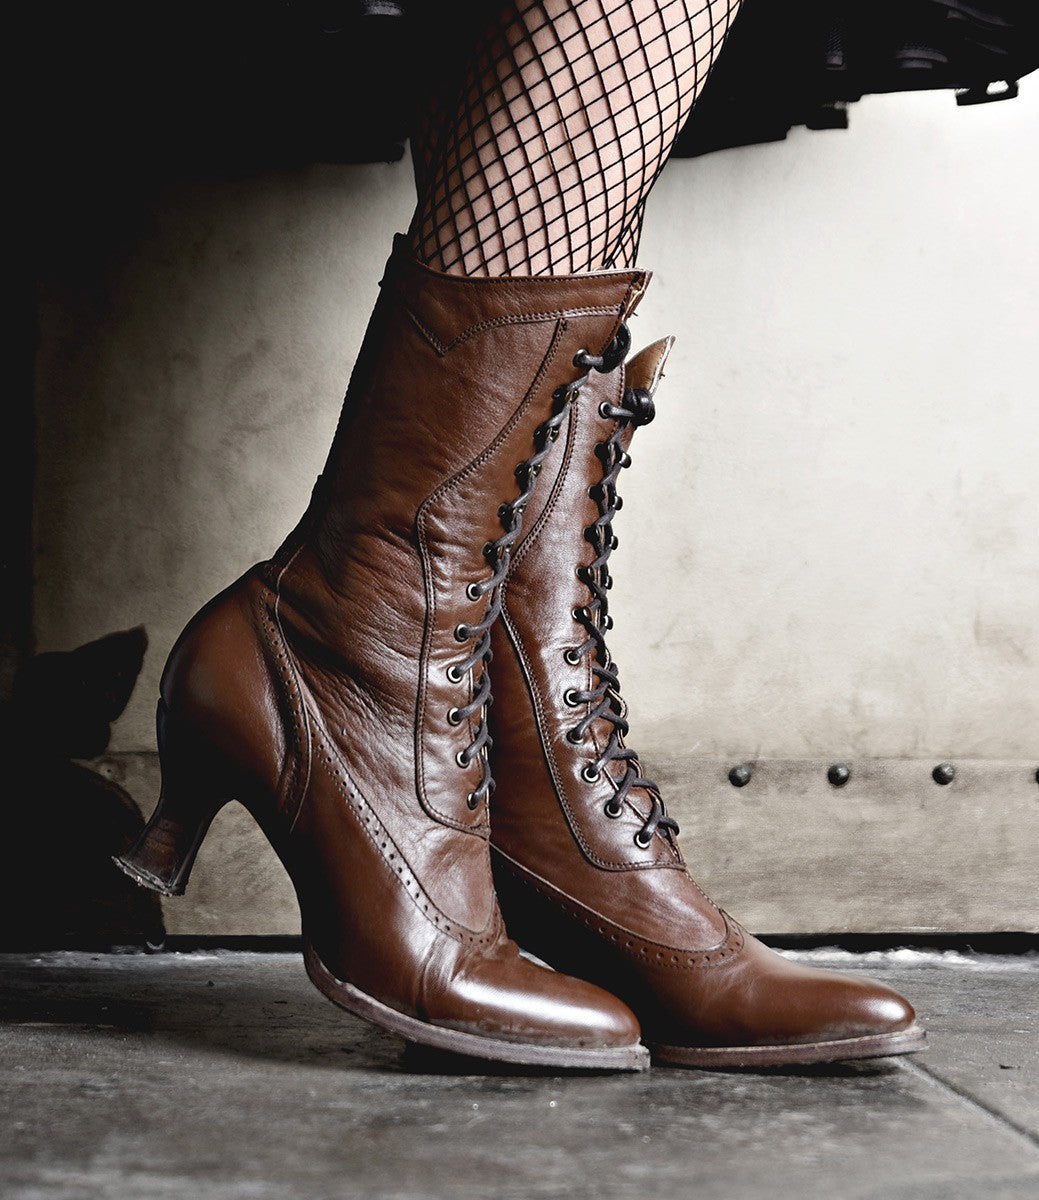 Vintage Shoes, Vintage Style Shoes Modern Victorian Lace Up Leather Boots in Cognac $285.00 AT vintagedancer.com